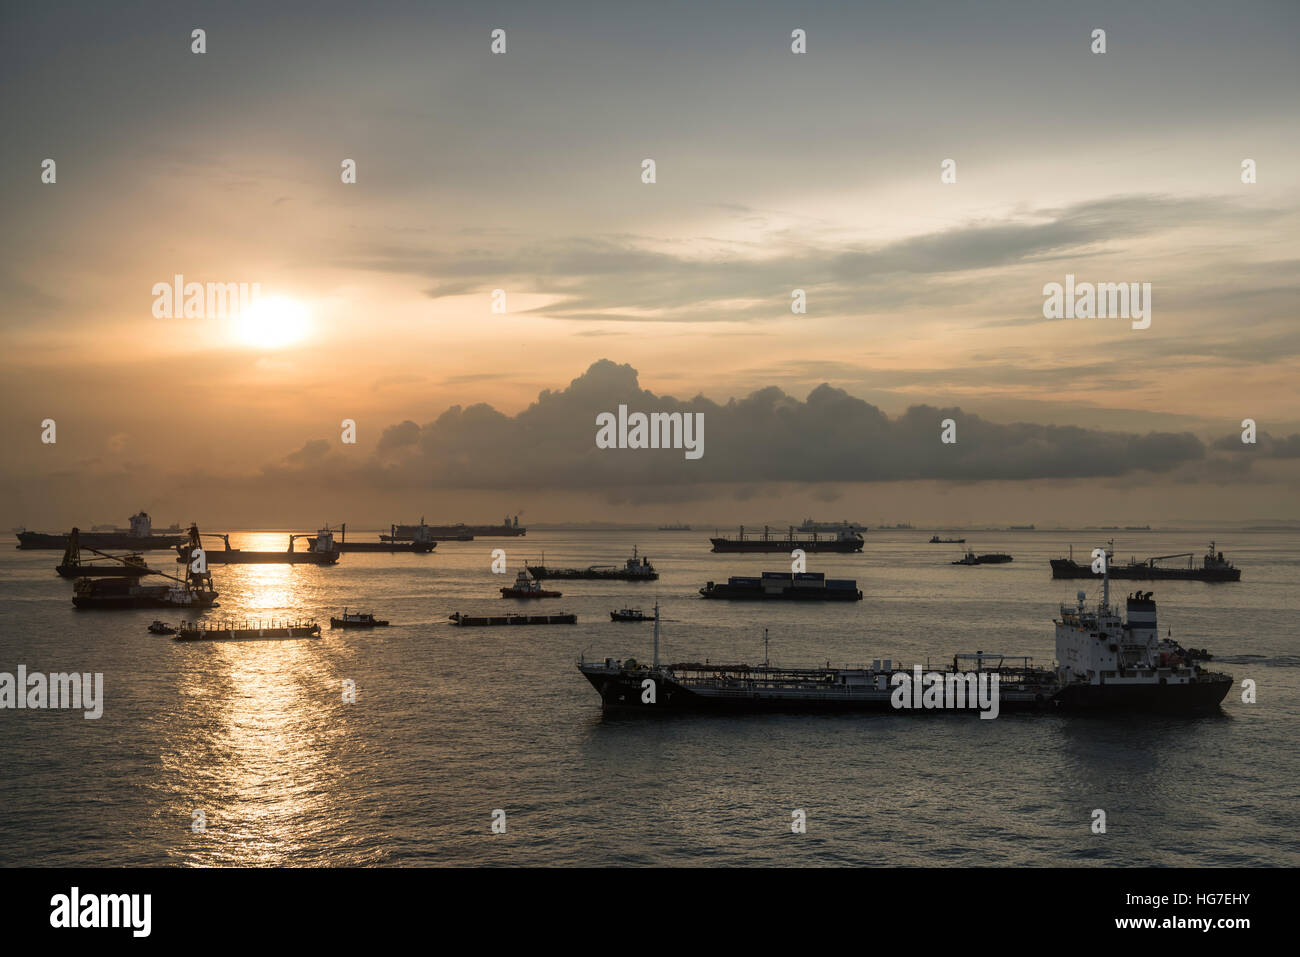 Container and Cargo Vessels in the Busy Singapore Straits at Sunrise - Stock Image